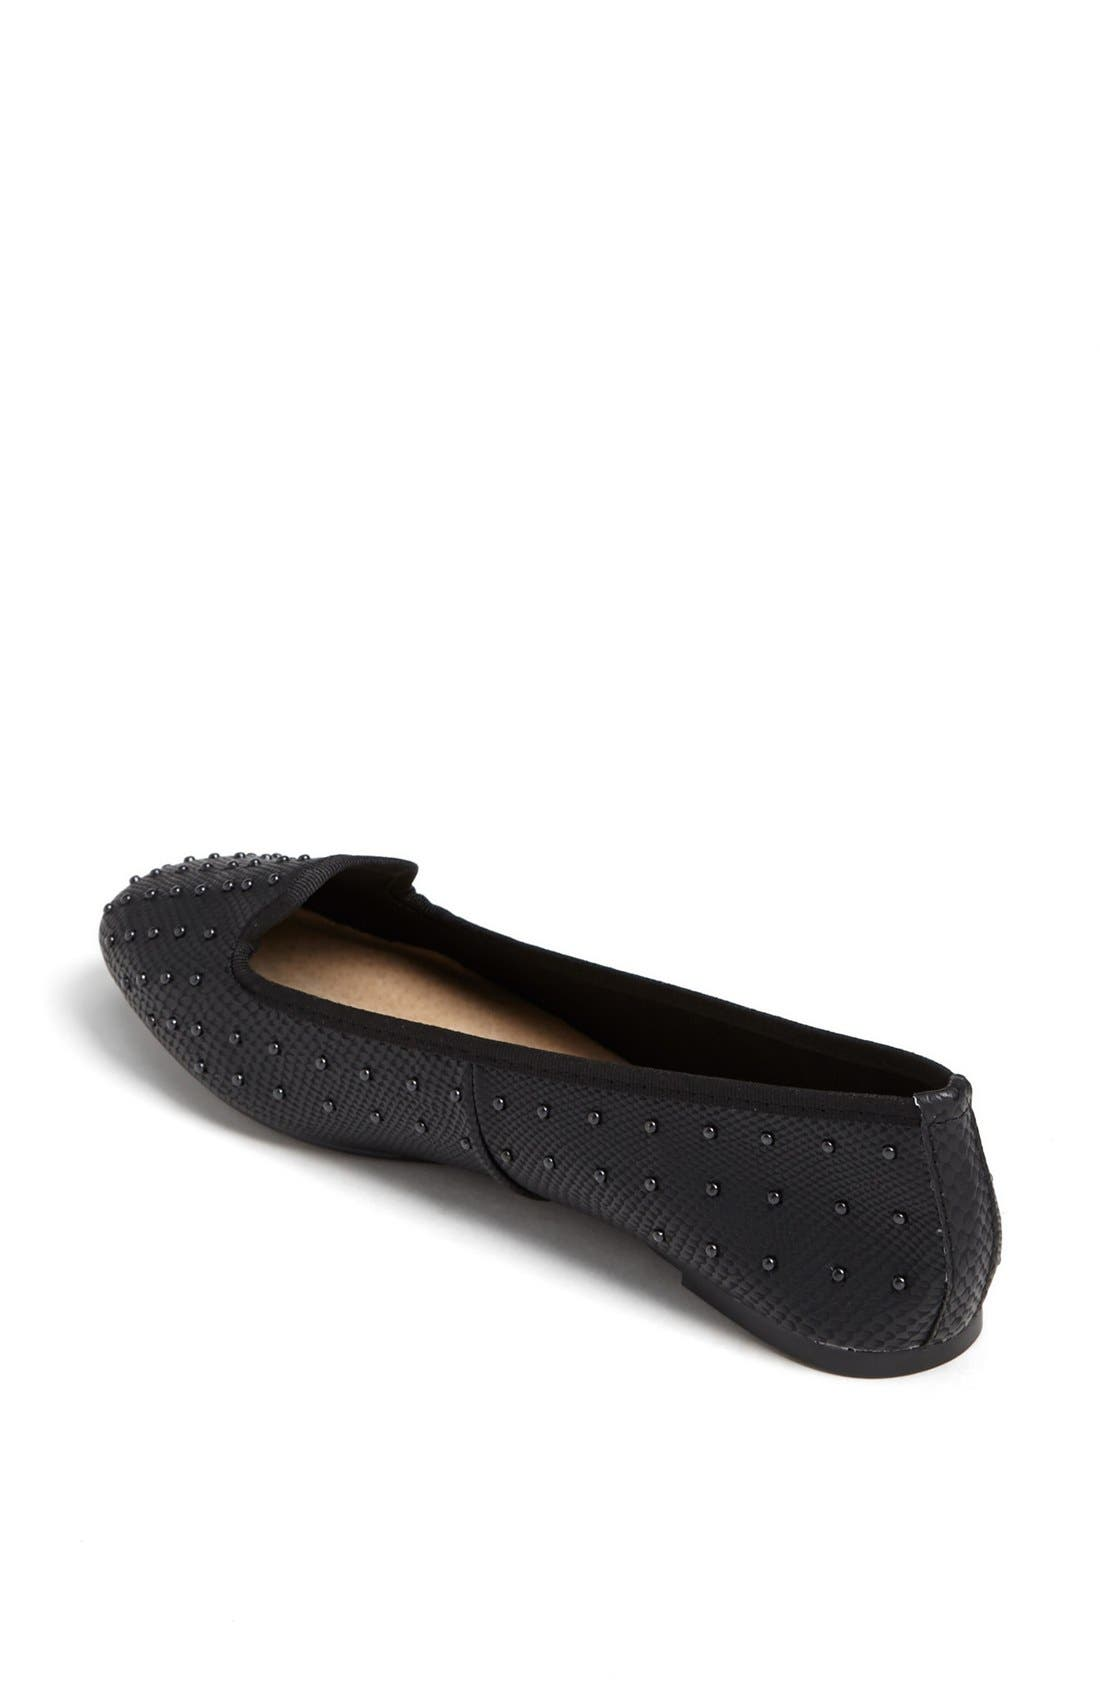 Alternate Image 2  - Topshop 'Miko' Smoking Slipper